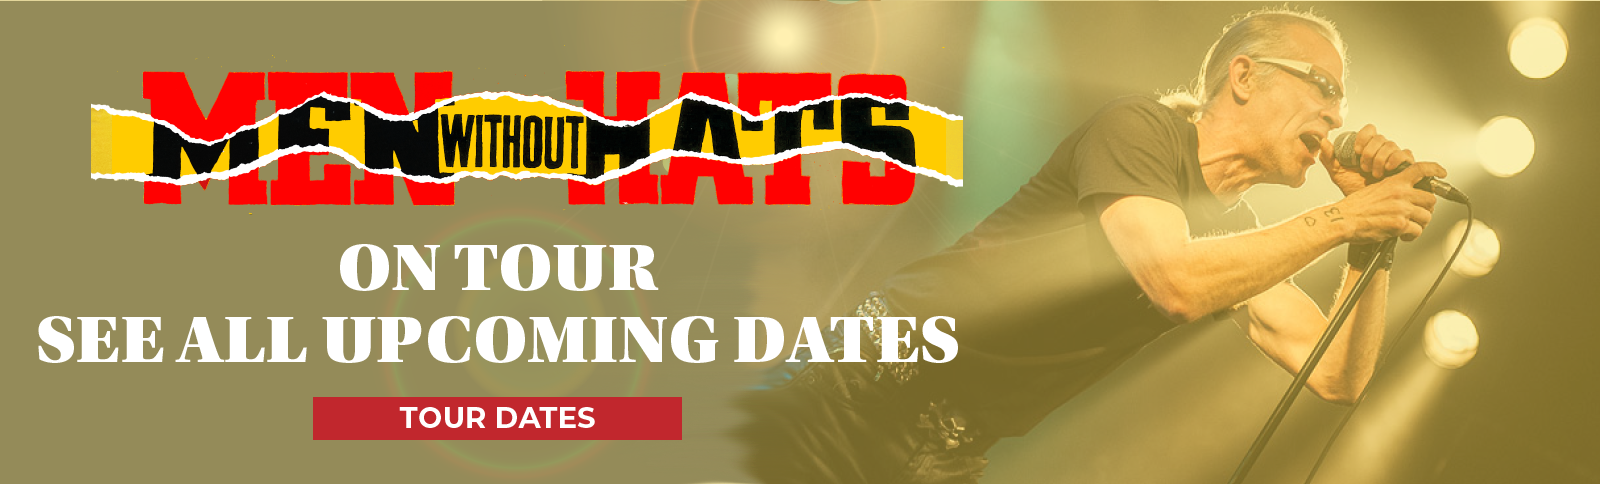 men without hats tour page